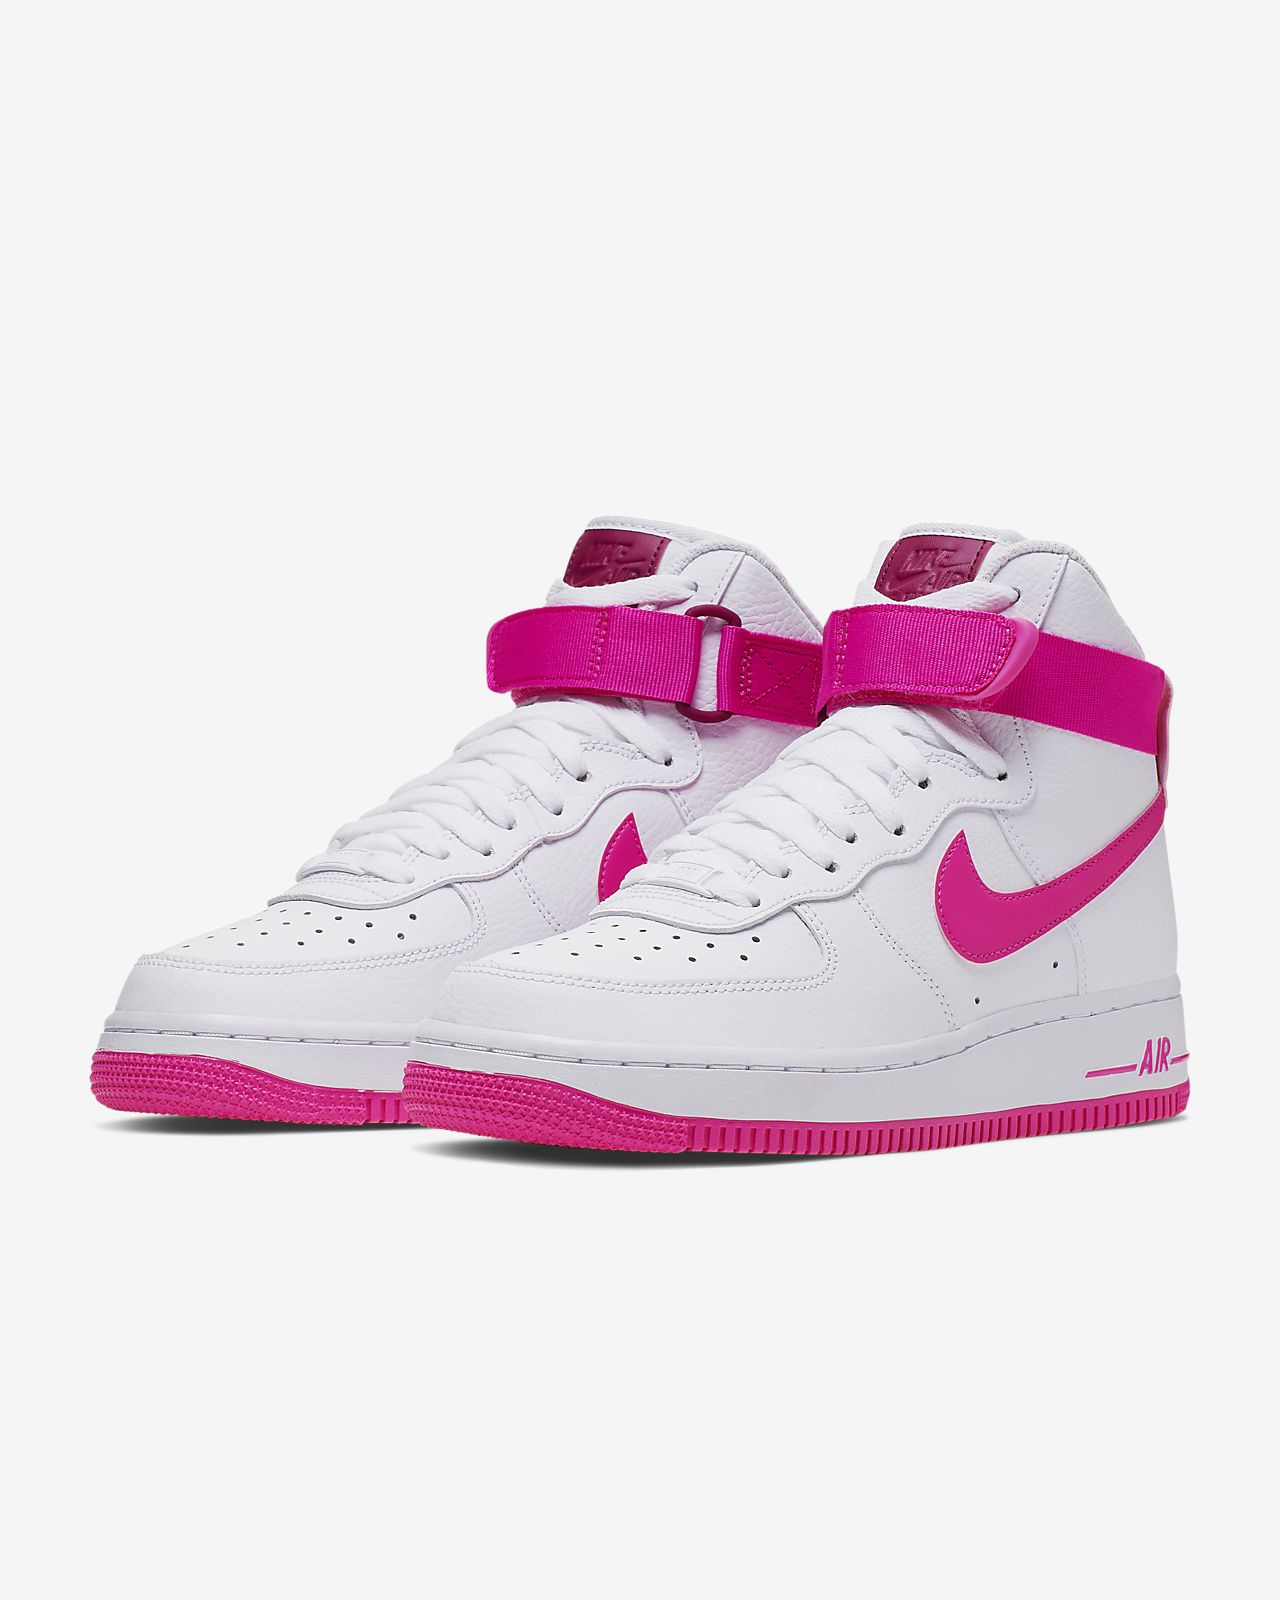 28e6d39b4b361 Nike Air Force 1 High 08 LE Zapatillas - Mujer. Nike.com ES